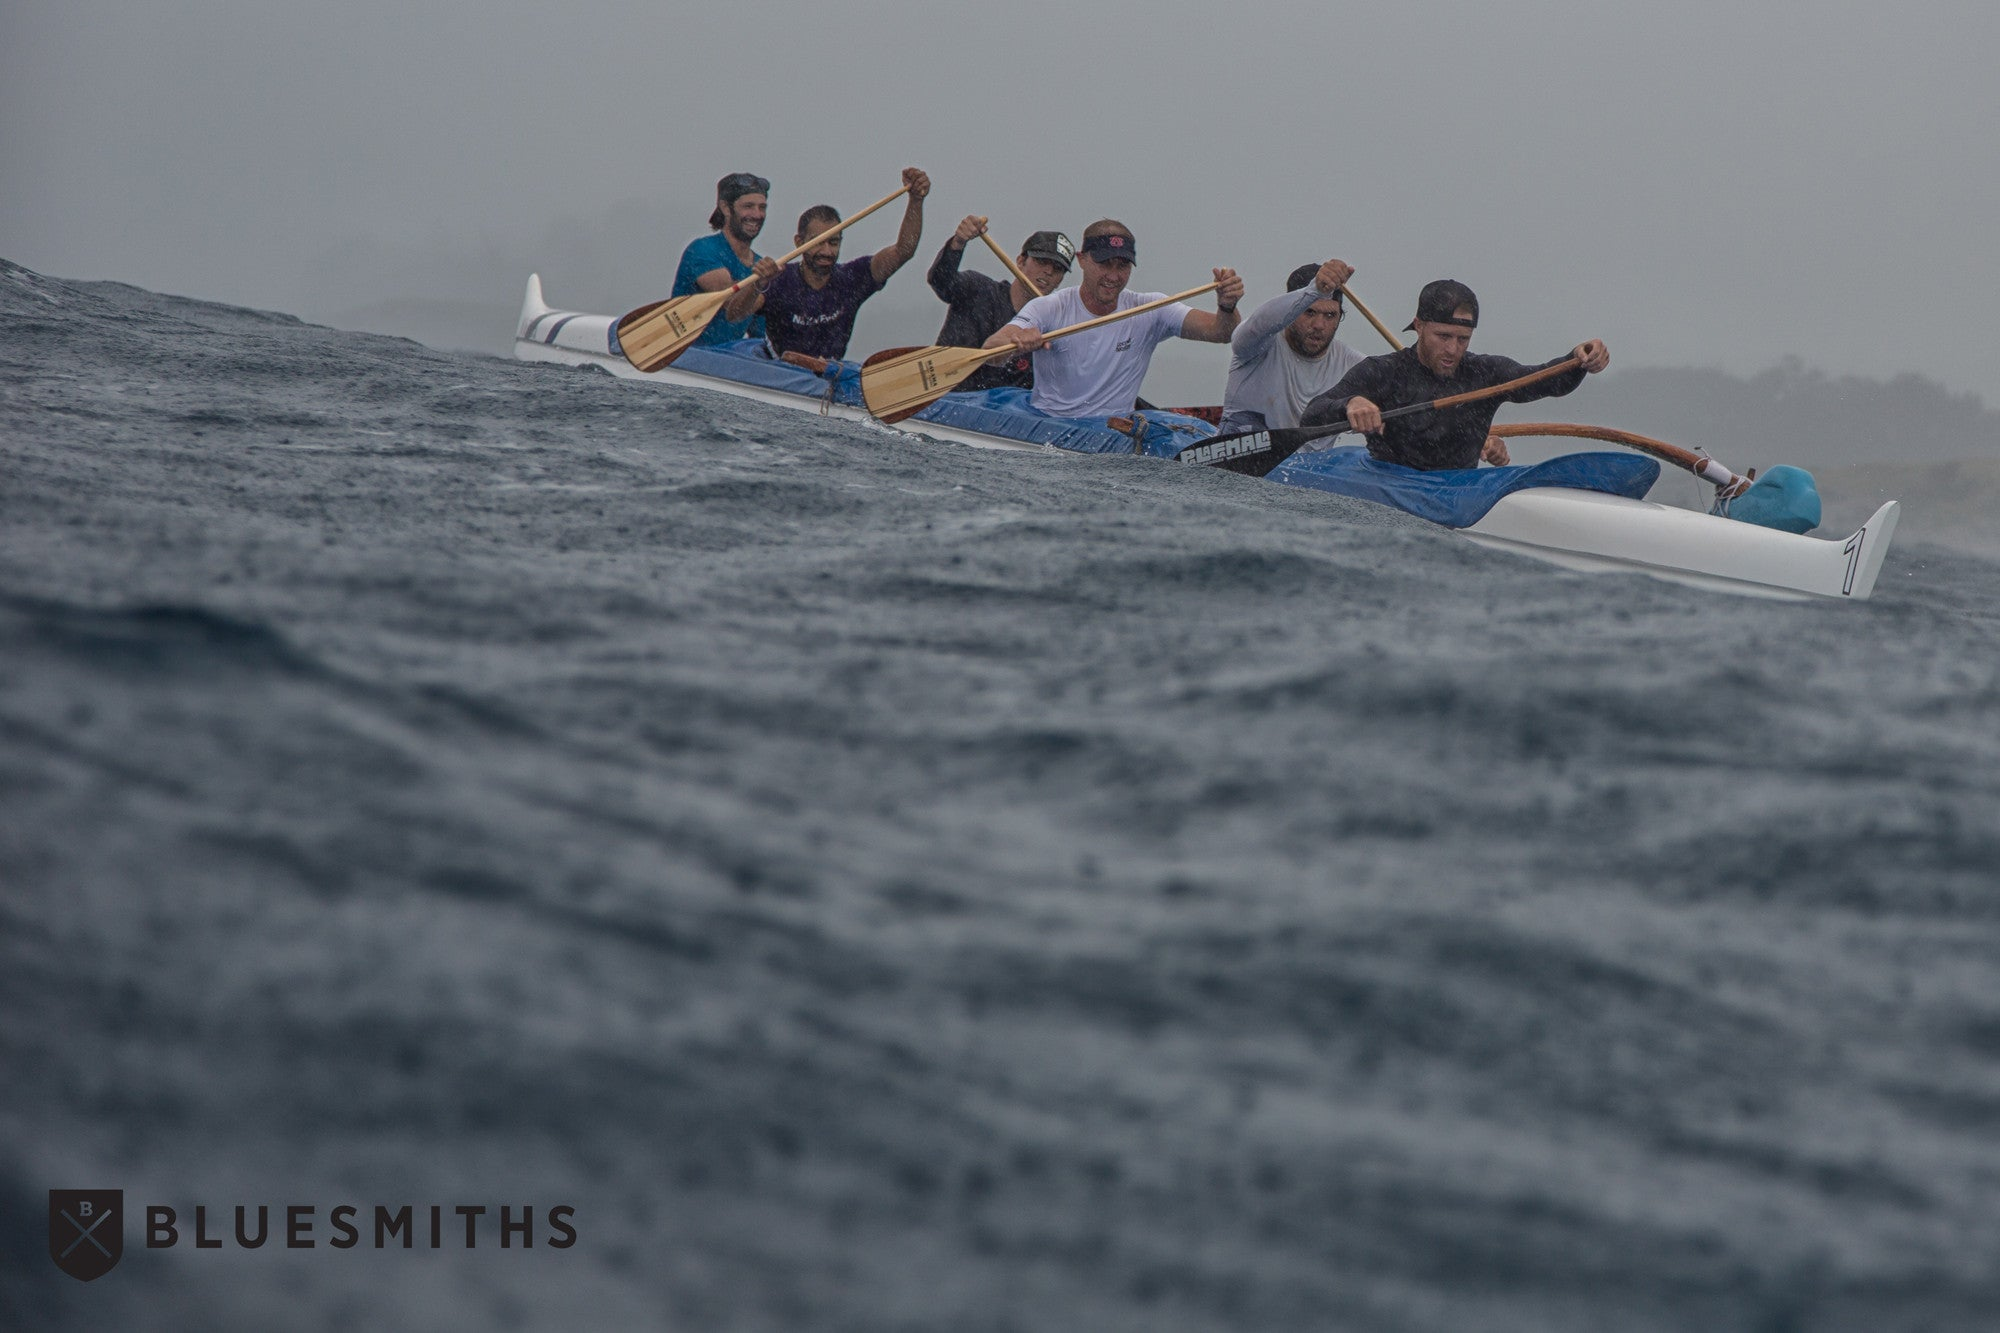 Outrigger Canoe Bluesmiths Paddle Imua Maui Hawaii